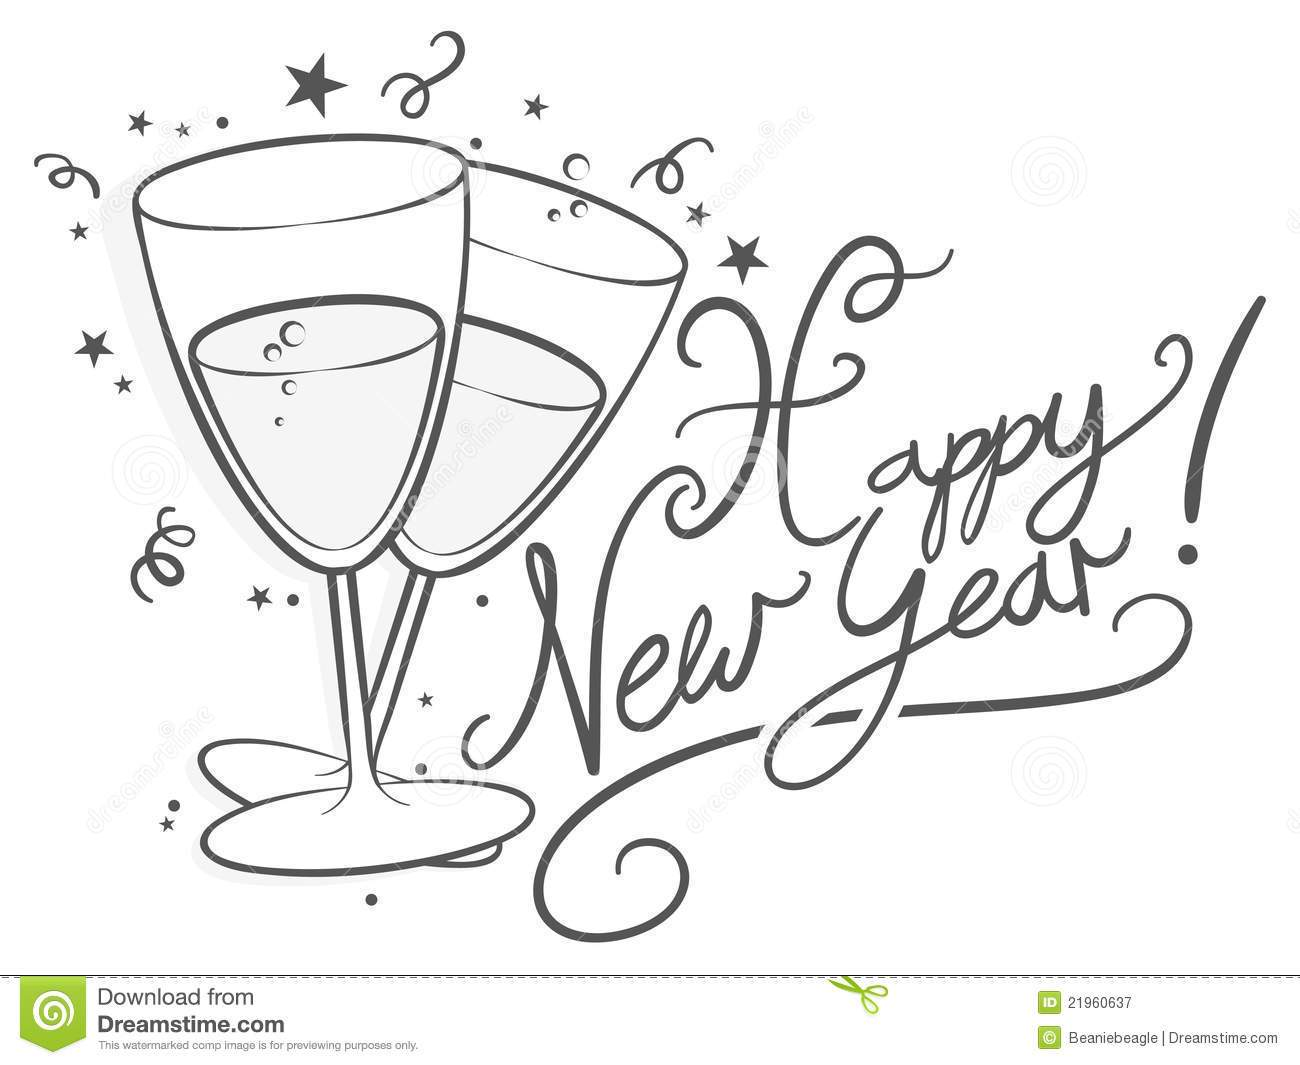 New years clipart black and white 5 » Clipart Portal.